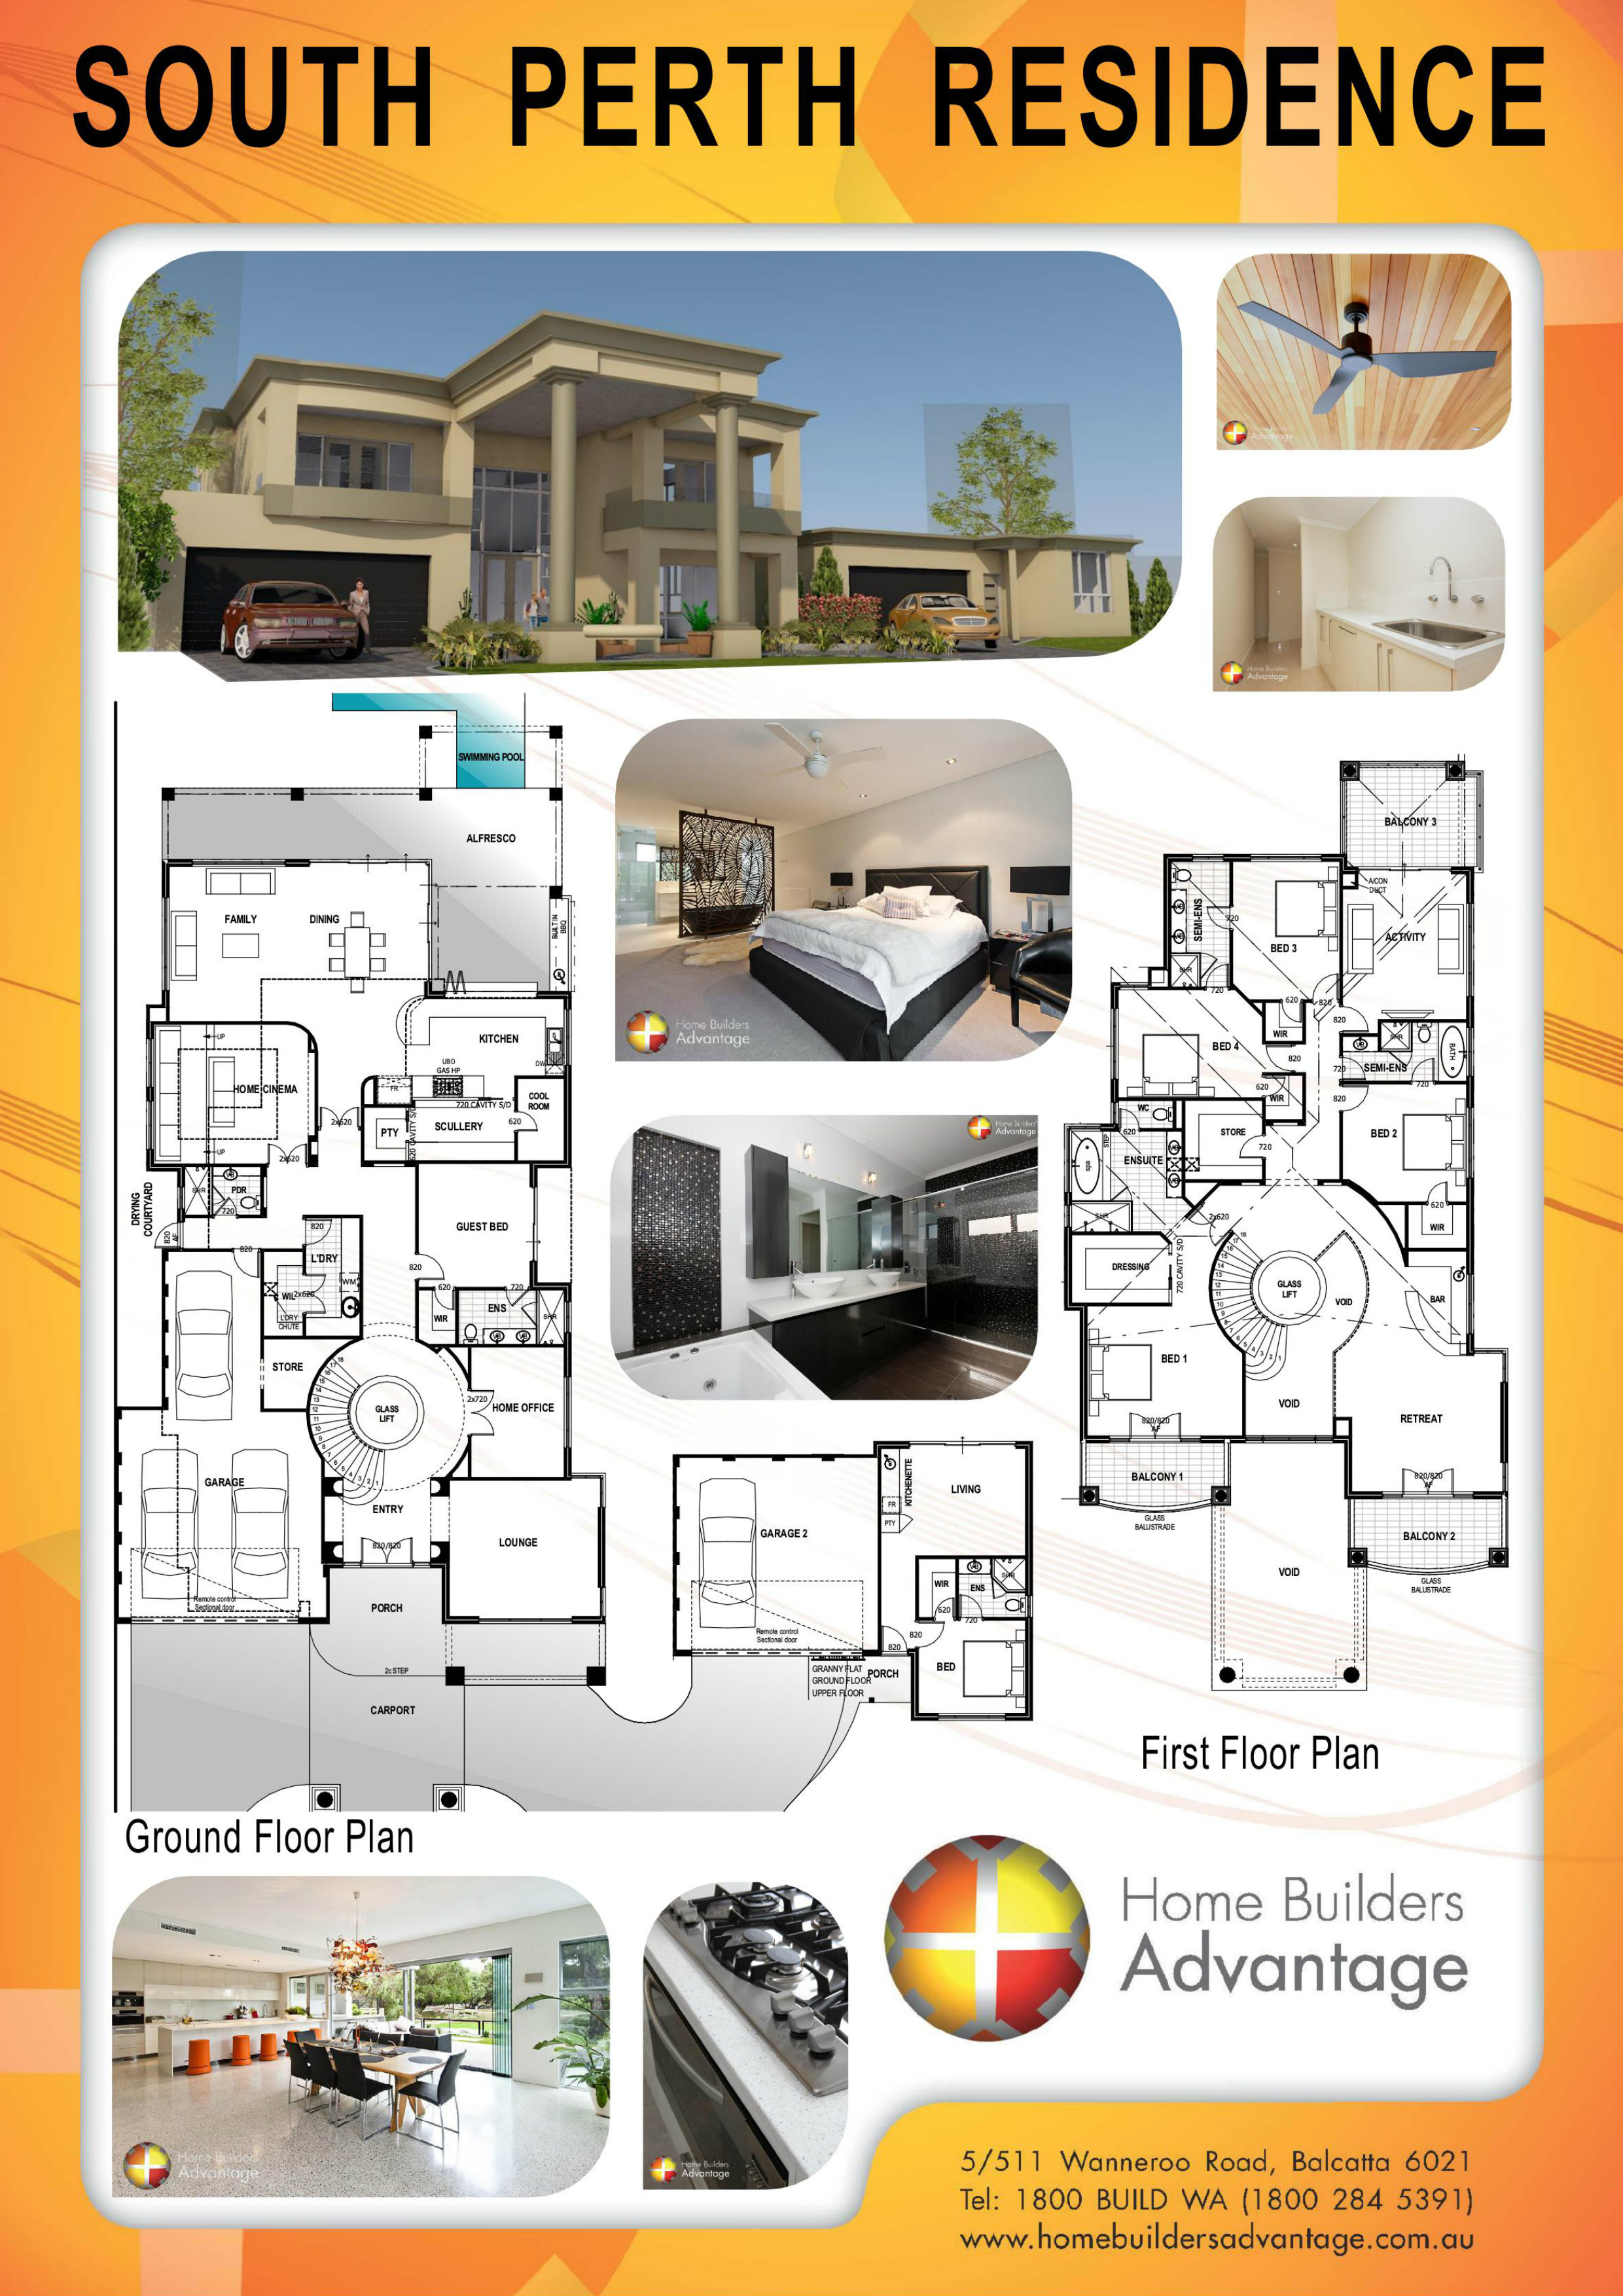 Image of South Perth Residence Home Builders Advantage